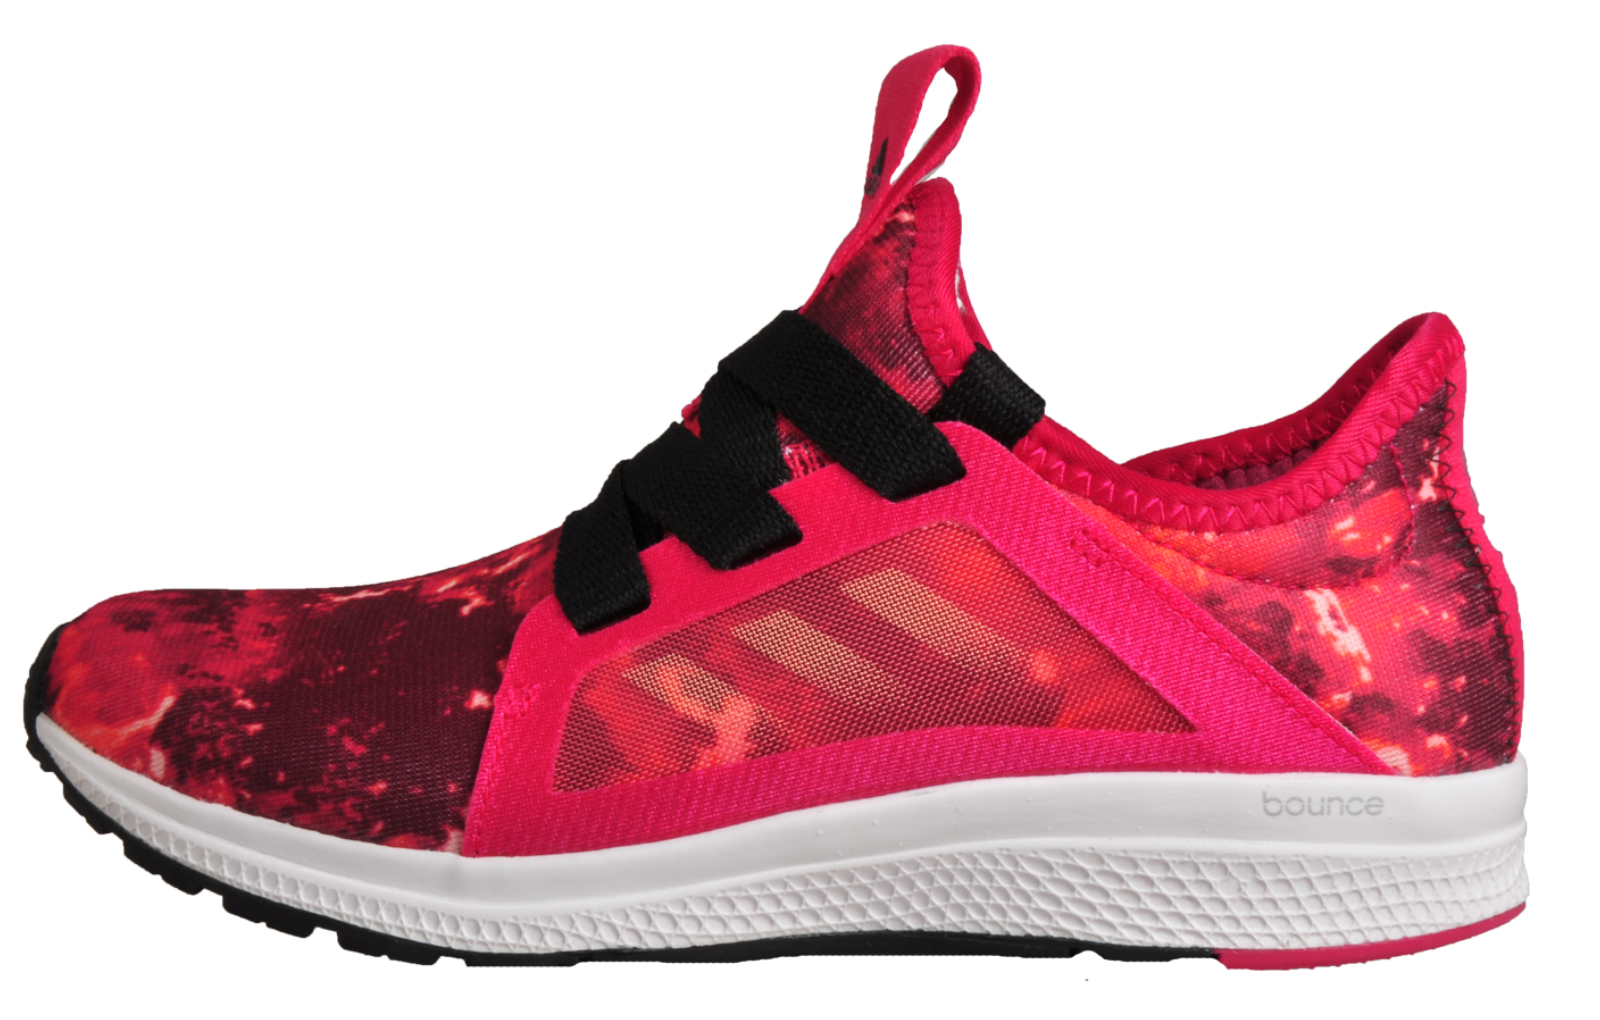 1c4f03c0d Adidas Edge Lux Bounce Women s Premium Running Shoes Fitness Gym Trainers  Pink